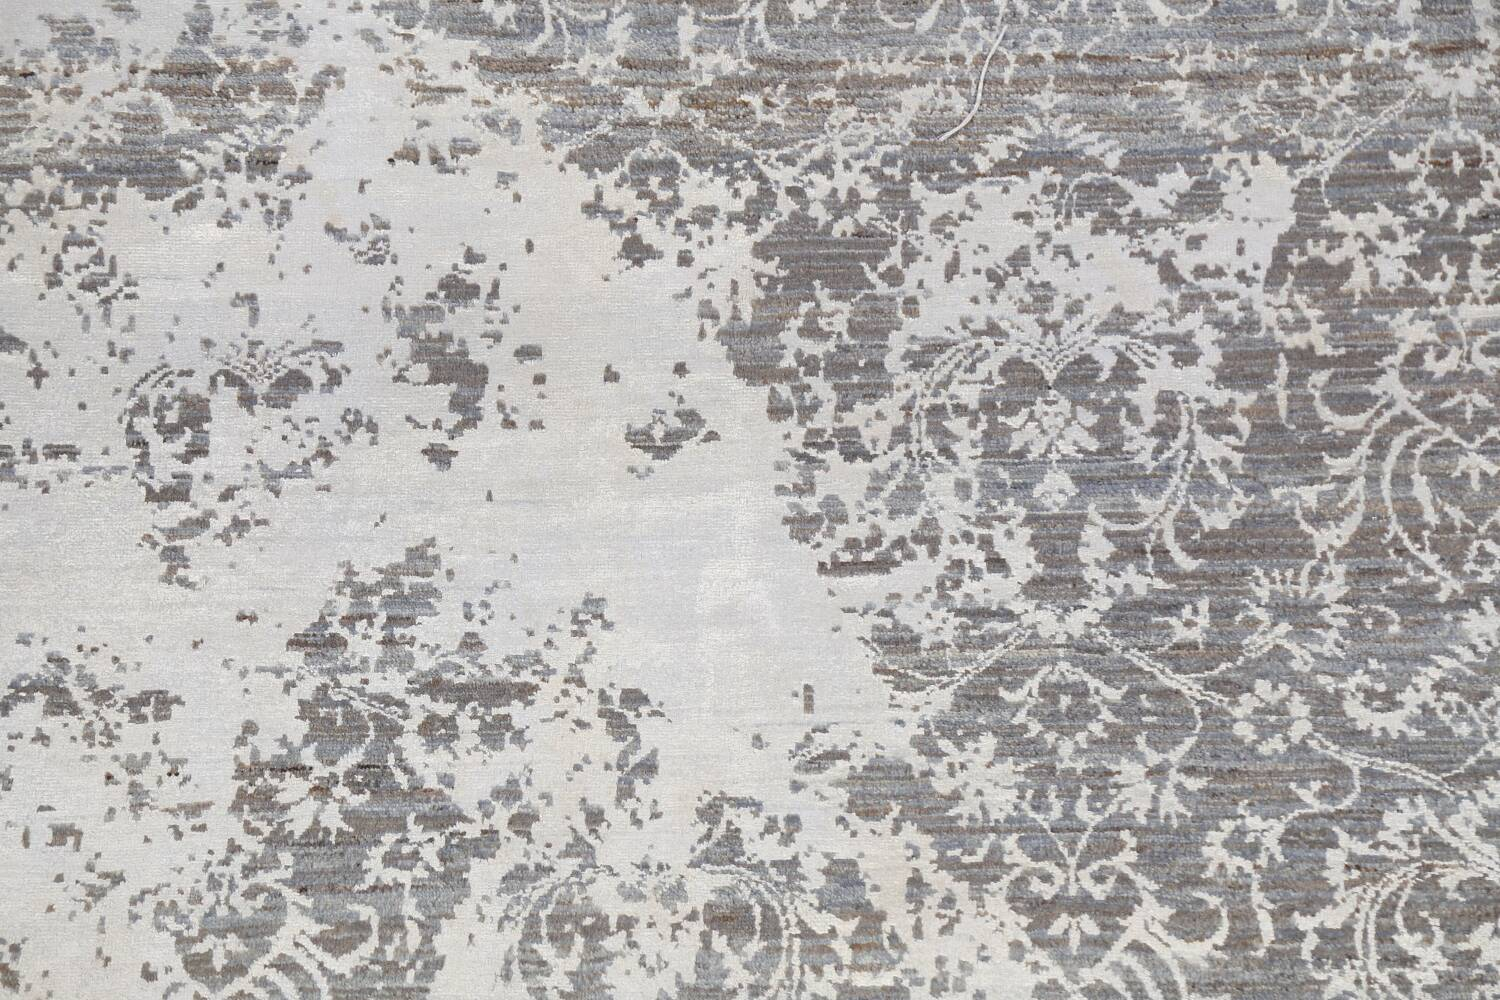 All-Over Distressed Art & Craft Oriental Area Rug 5x7 image 4